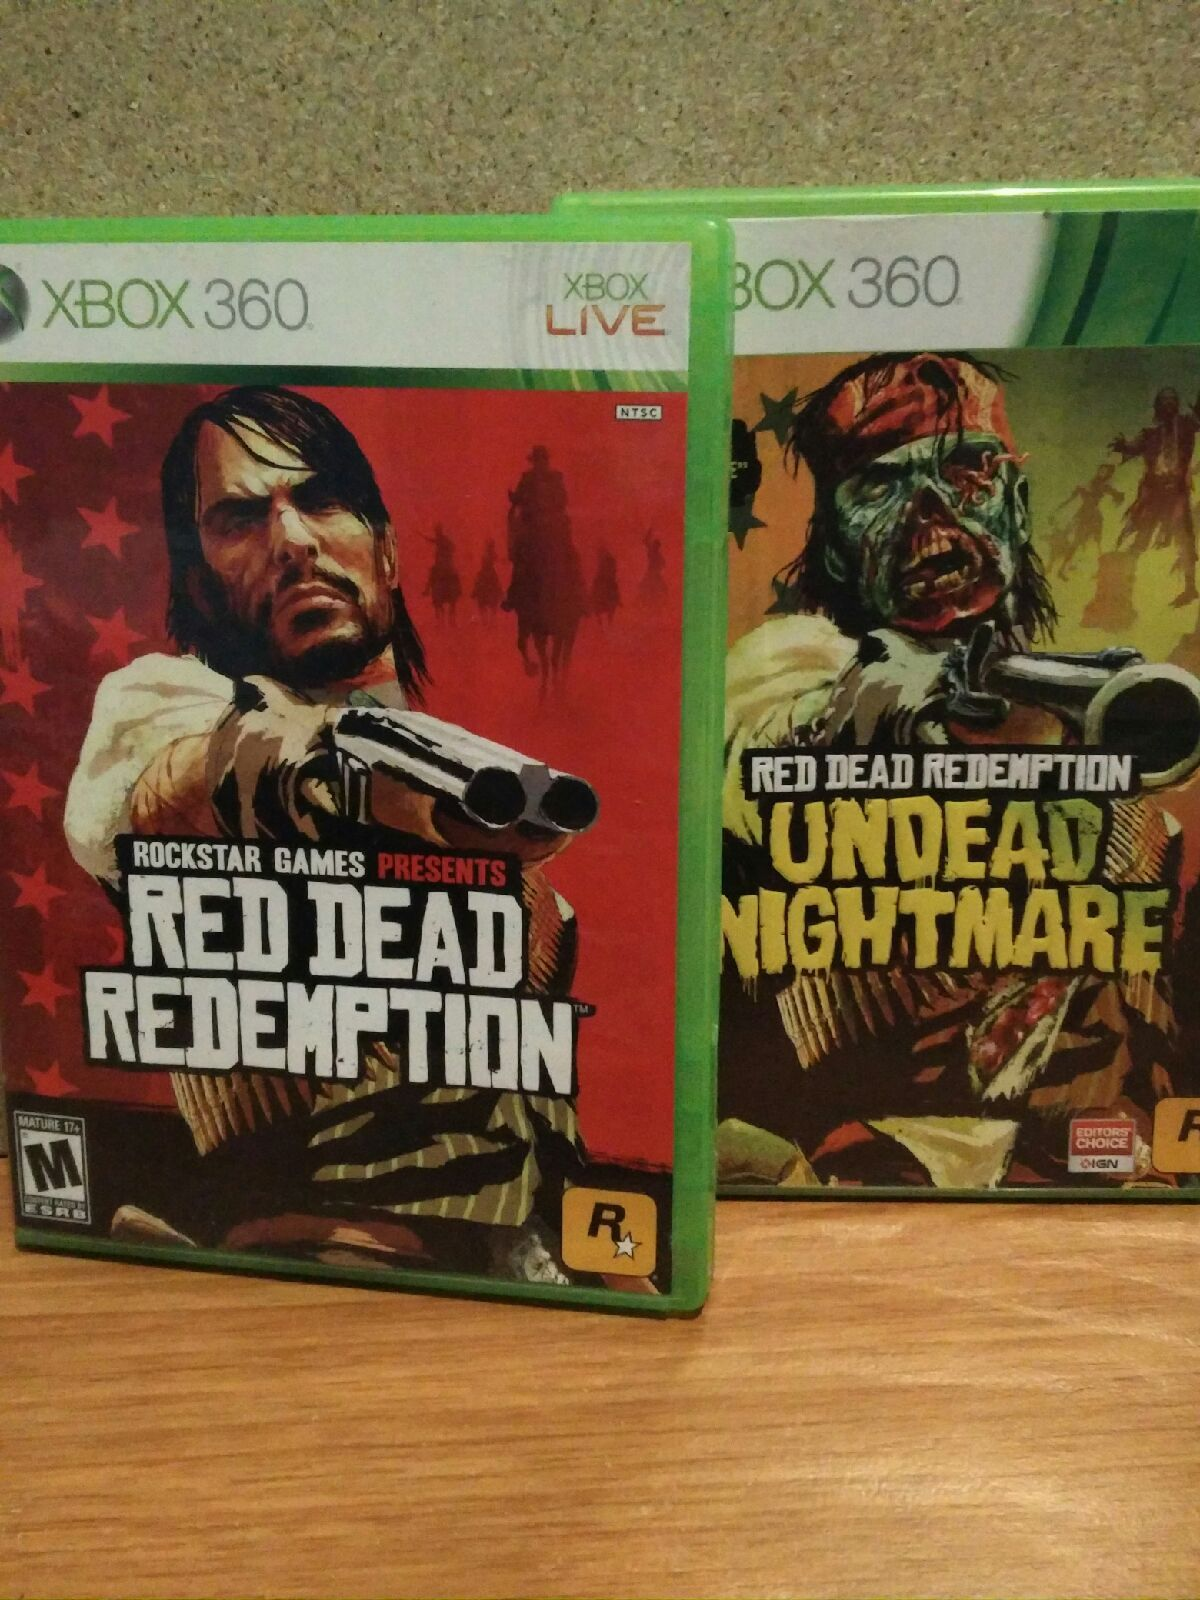 Get Both Red Dead Redemption The Undead Nightmare Dlc For Xbox 360 Read Dead Redemption Play As A Rogue Cowboy In Red Dead Redemption Undead Game Presents